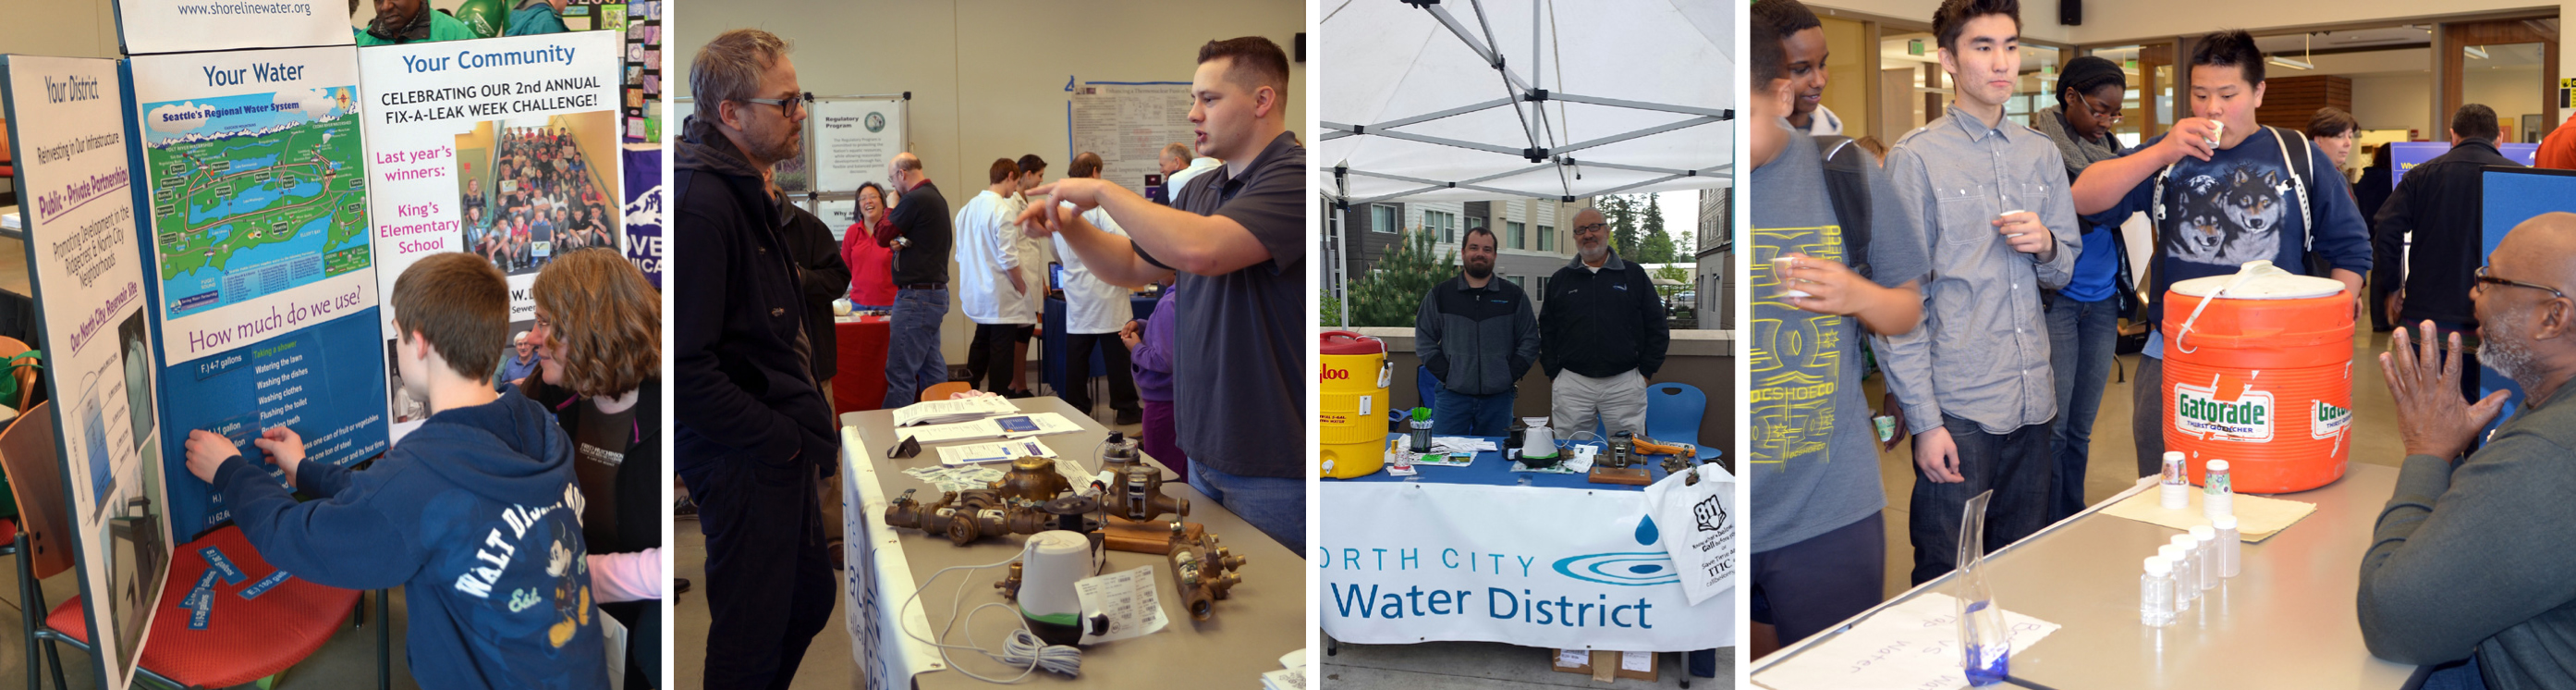 North City Water District Community Events Shoreline